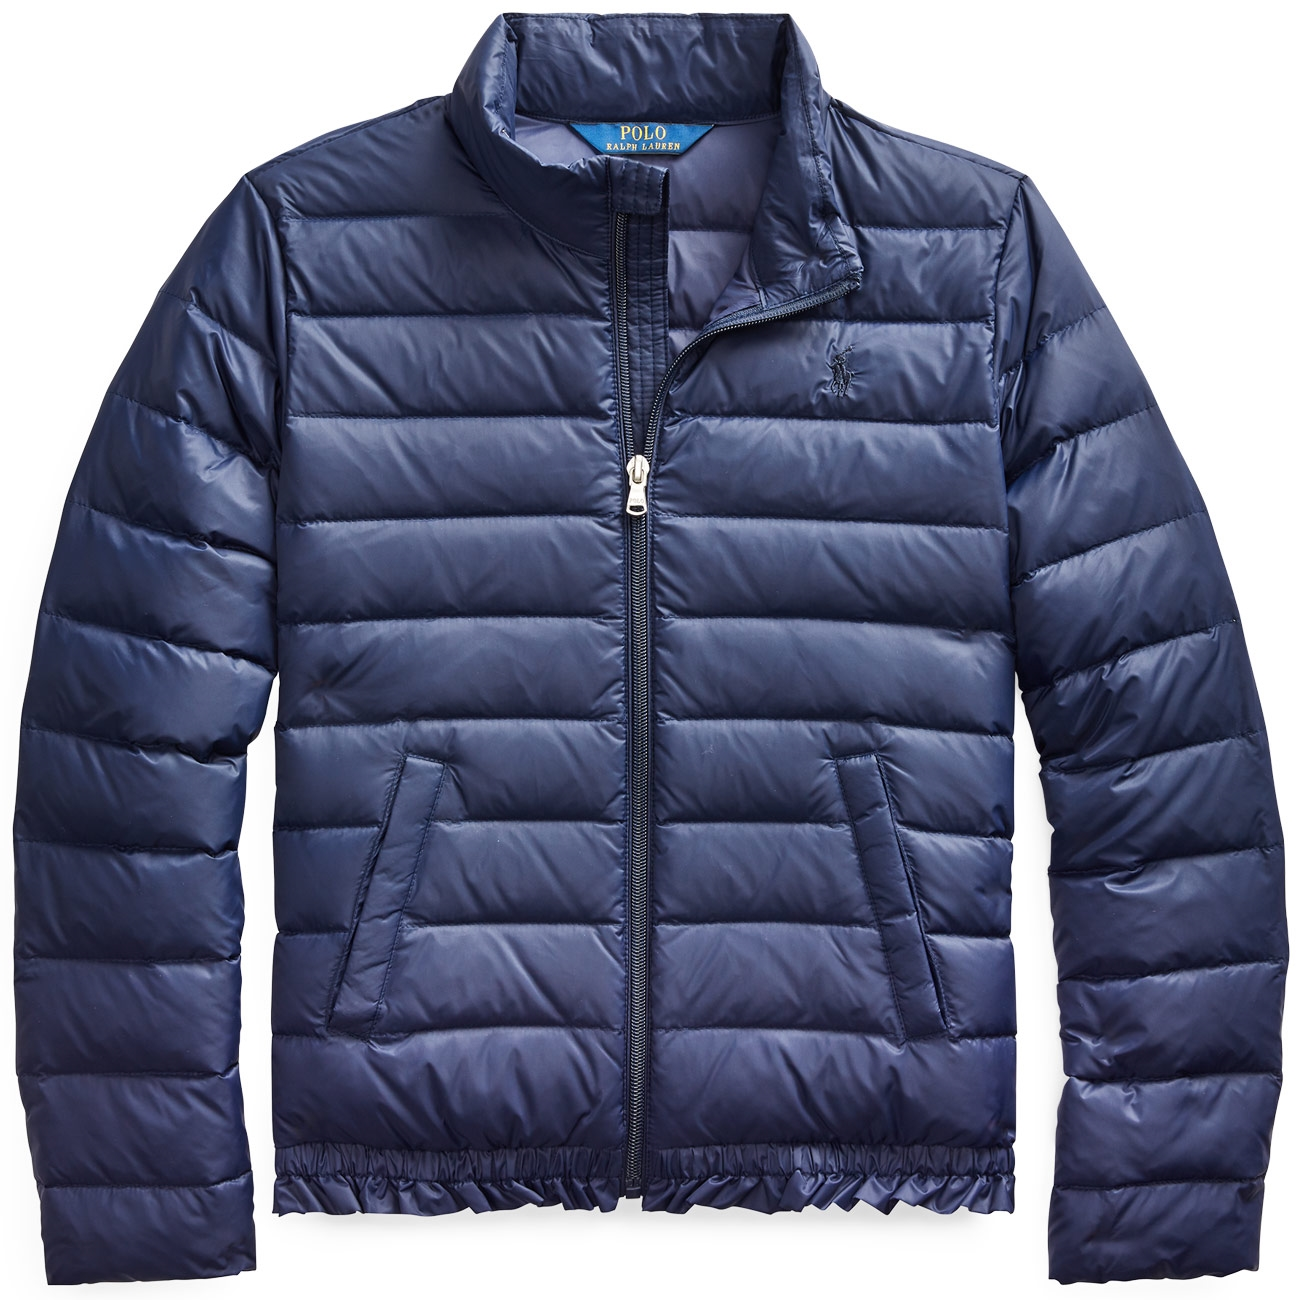 Polo ralph lauren winter vest profit from forex trading